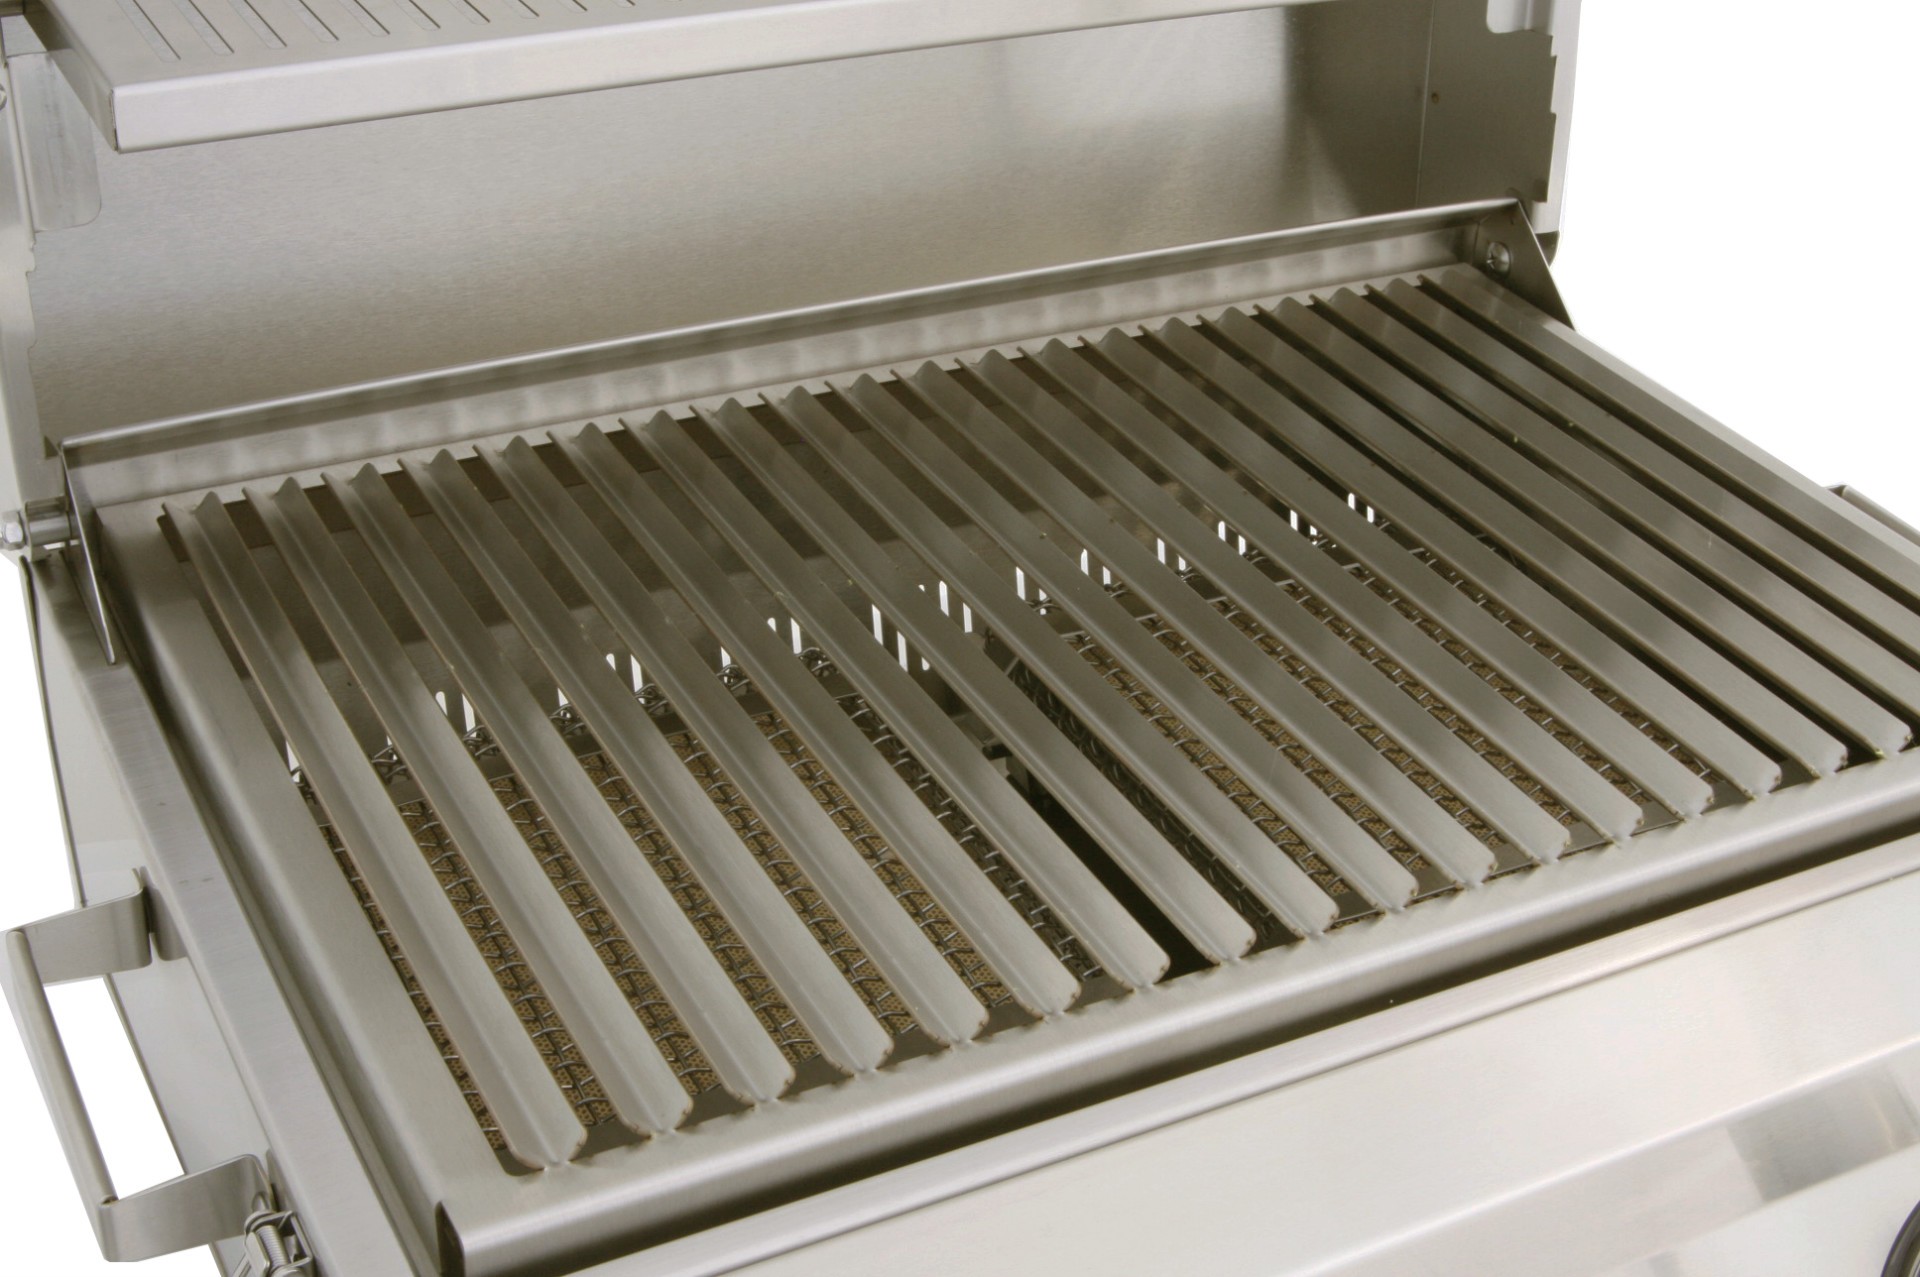 AA23A_grilling-grate-r100-w1920